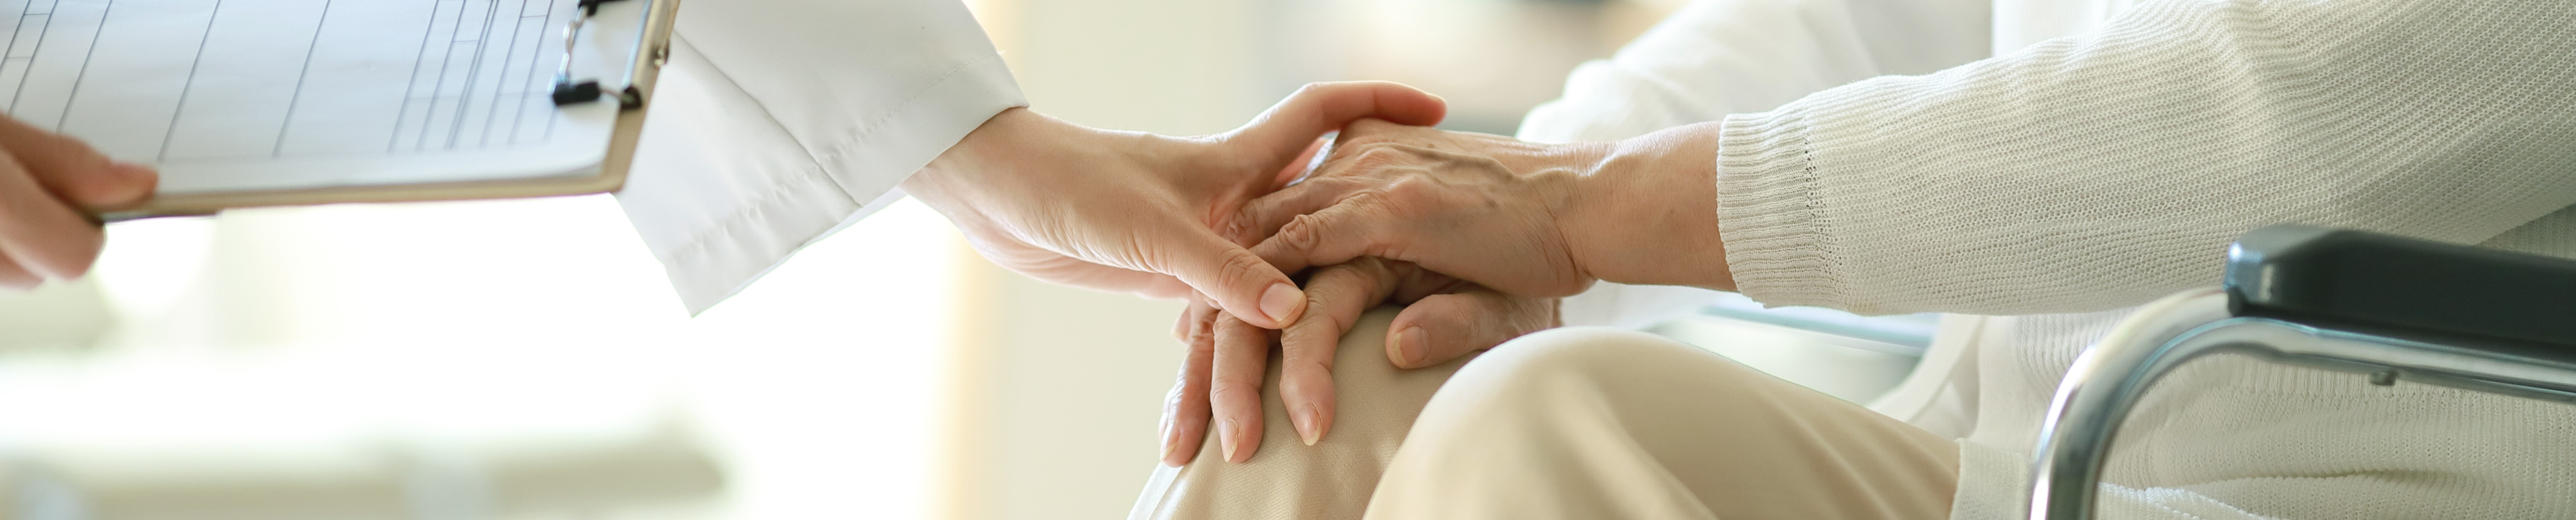 Three Reasons Your Assisted Living Facility Needs Key Control